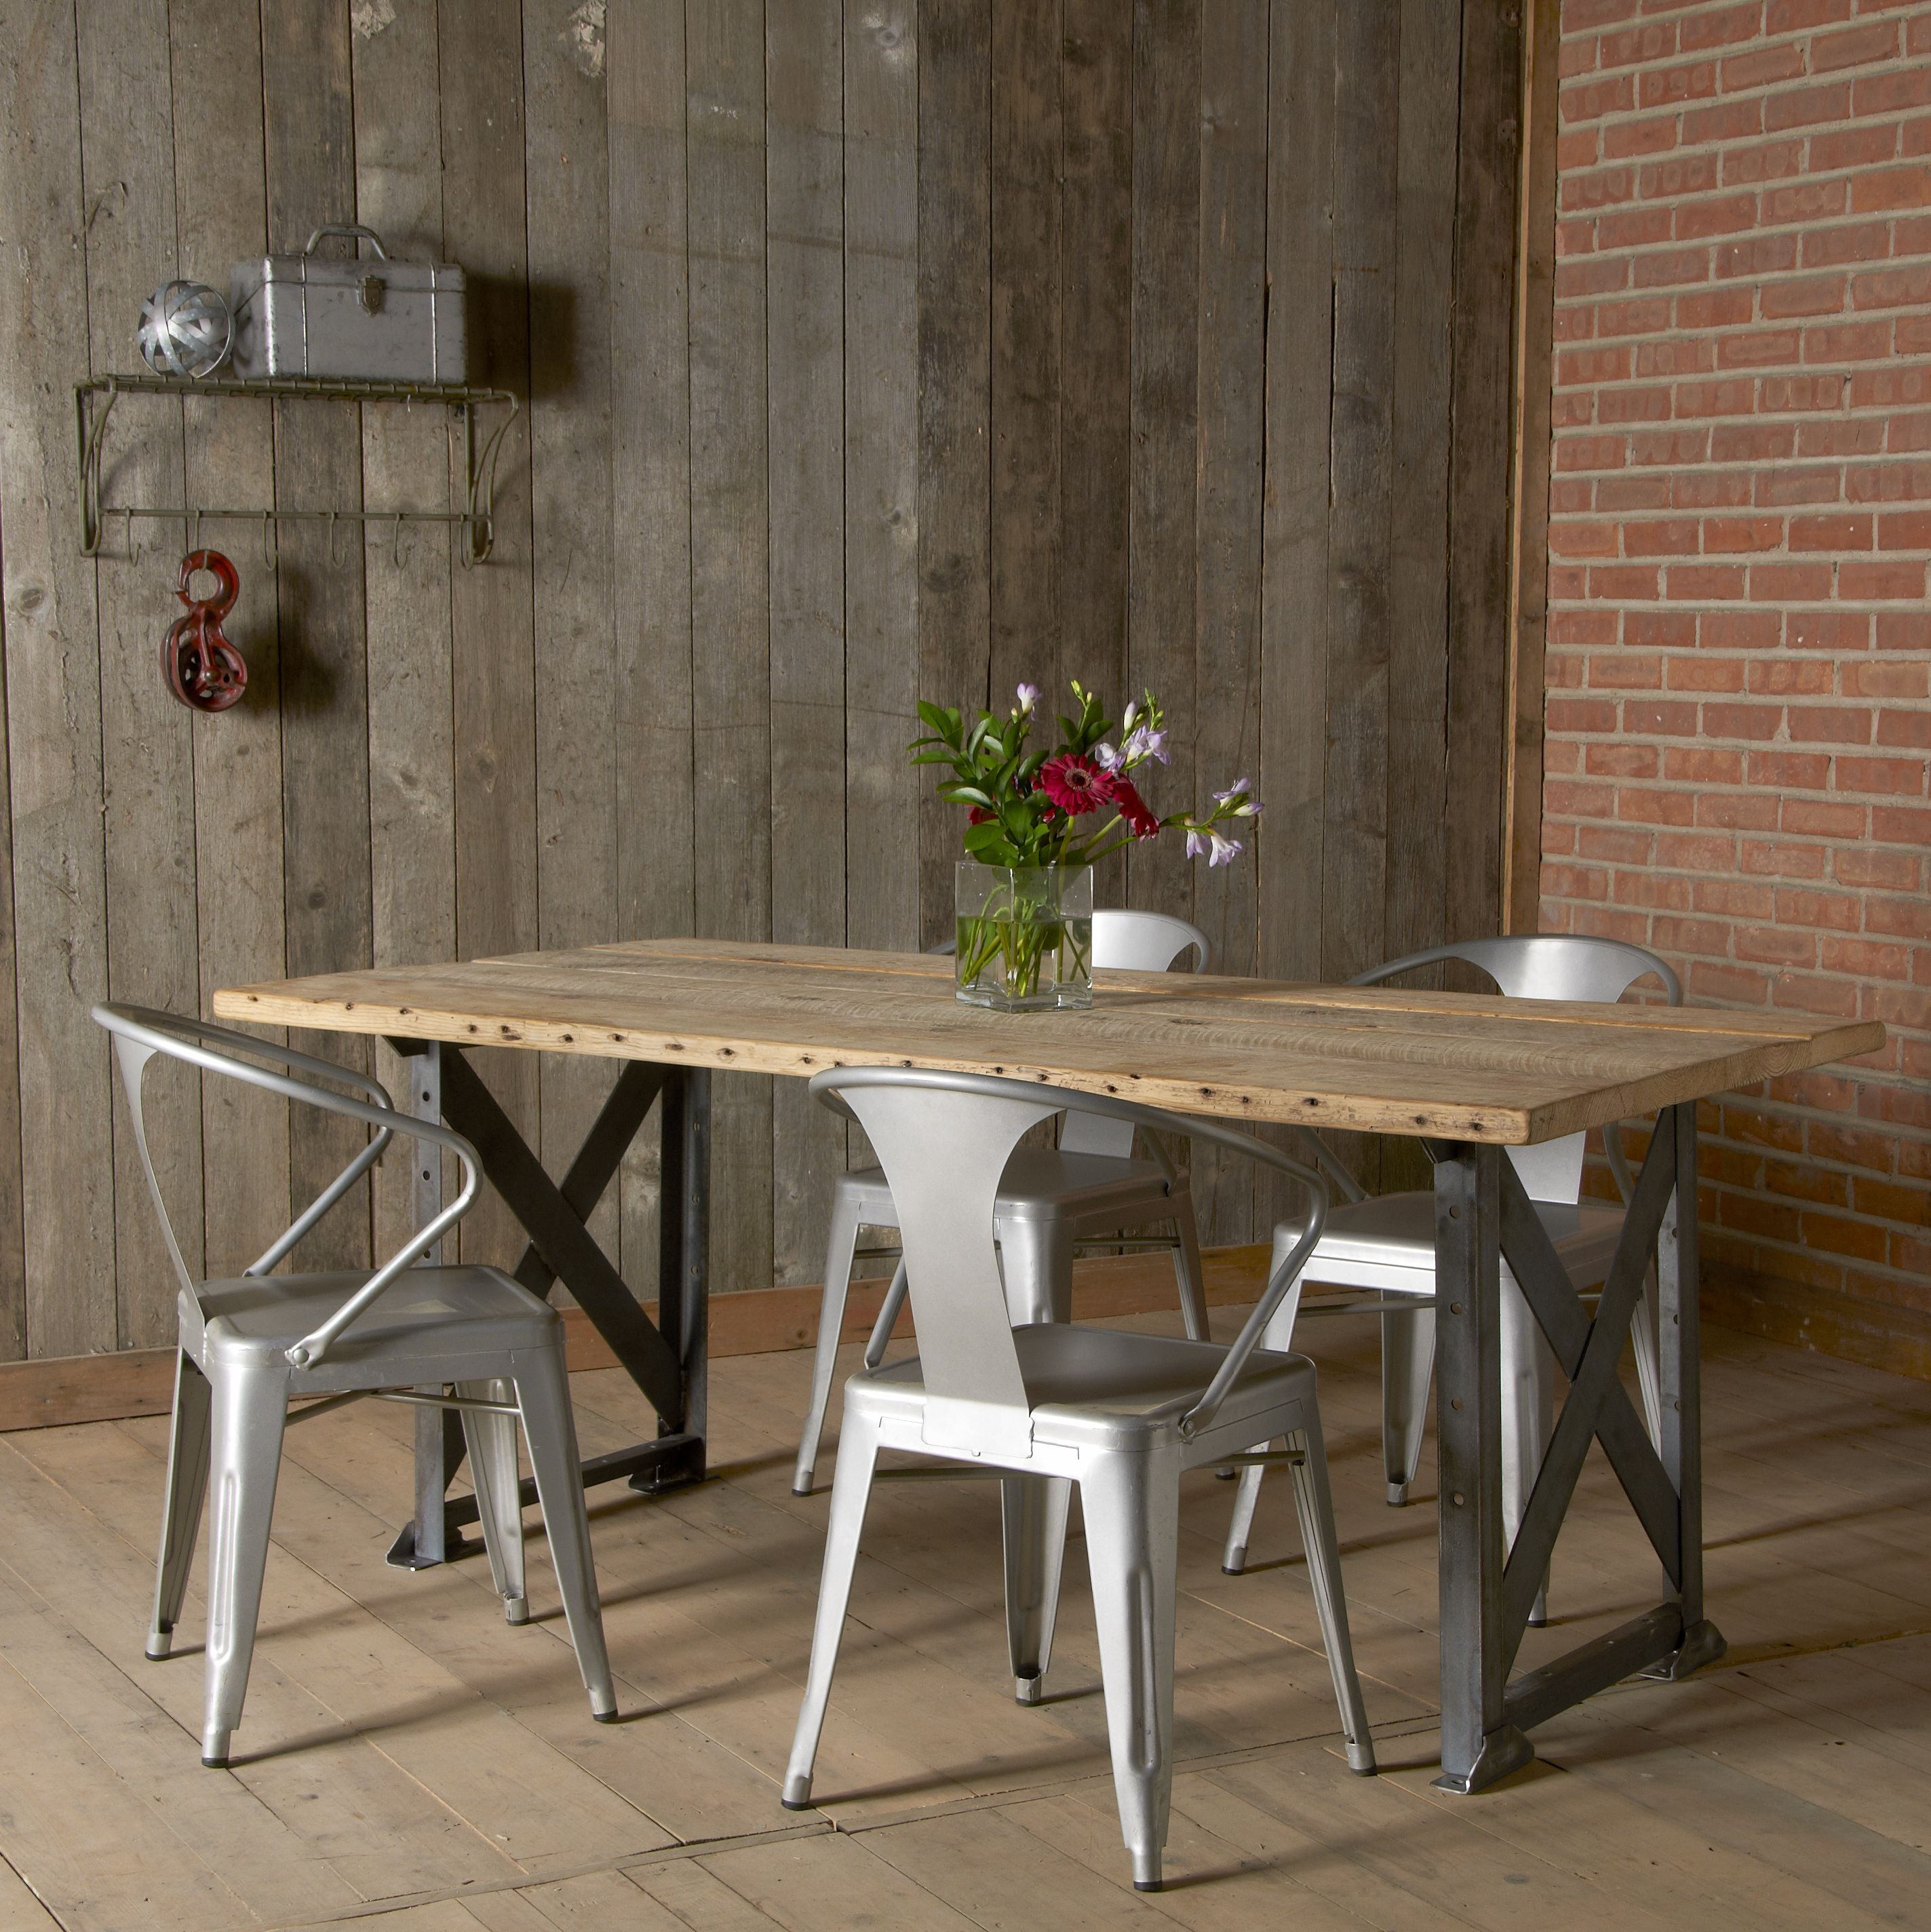 Buy a Handmade Industrial Factory Reclaimed Wood Dining Table